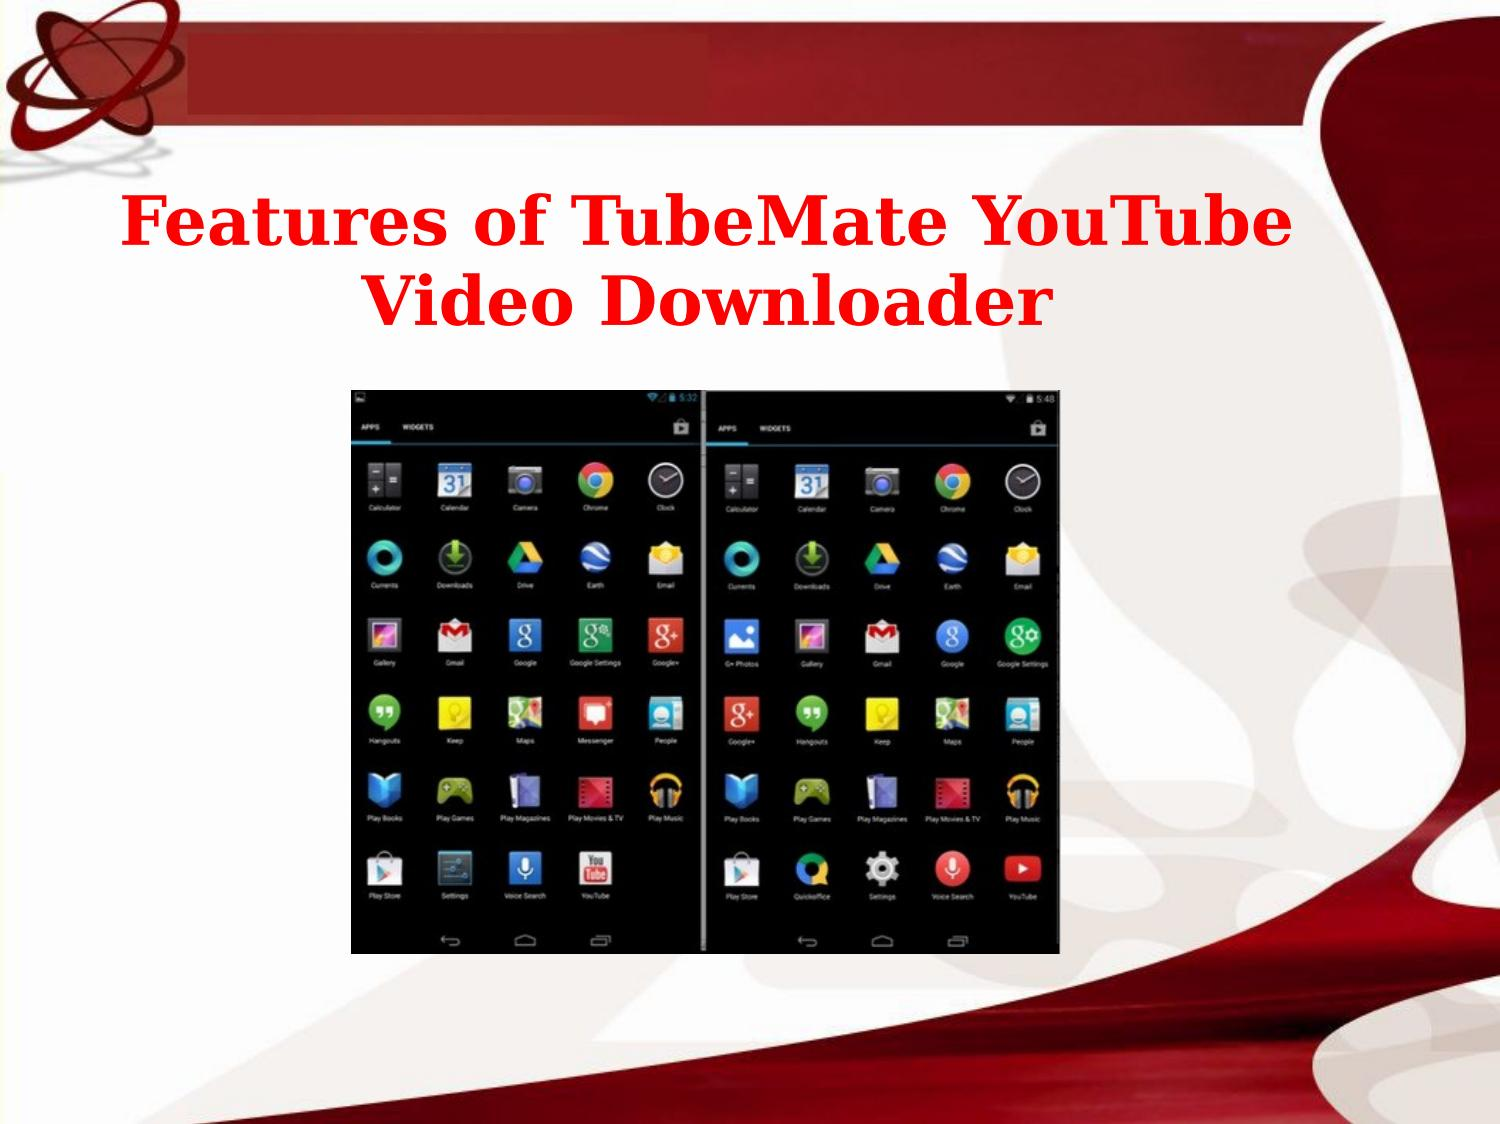 Features of tubemate youtube video downloader by sadamsdarry - issuu